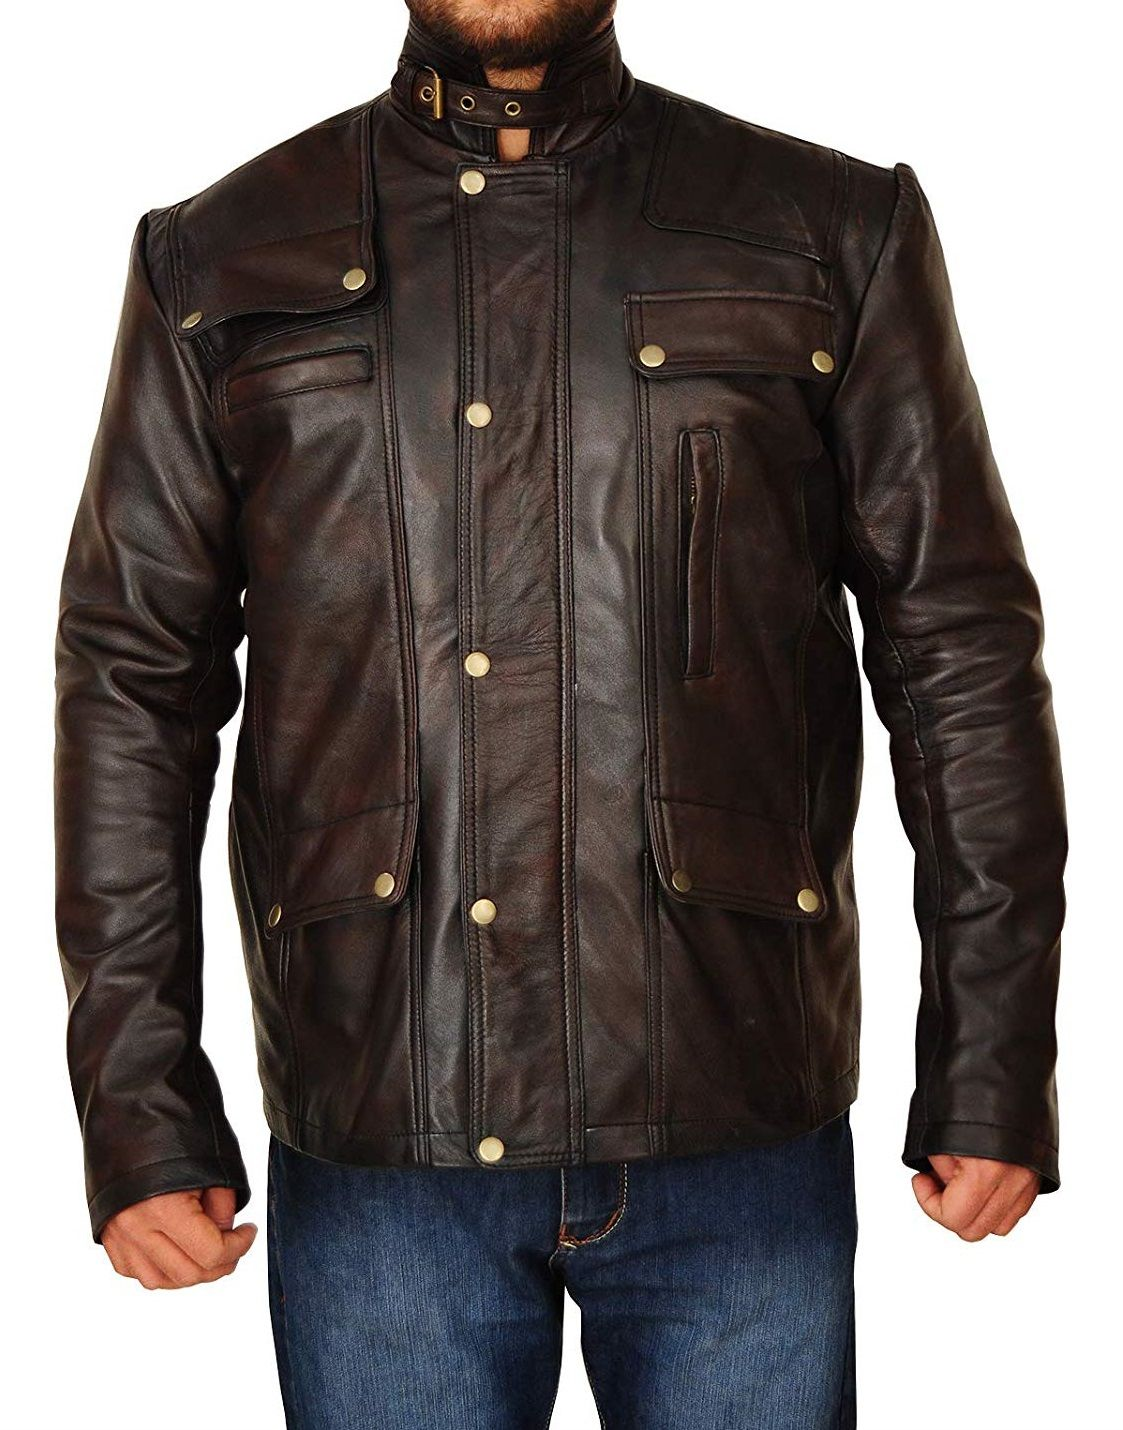 Supernatural Style Distressed Brown Leather Jacket Right Jackets In 2020 Distressed Leather Jacket Brown Leather Jacket Leather Jacket [ 1430 x 1123 Pixel ]